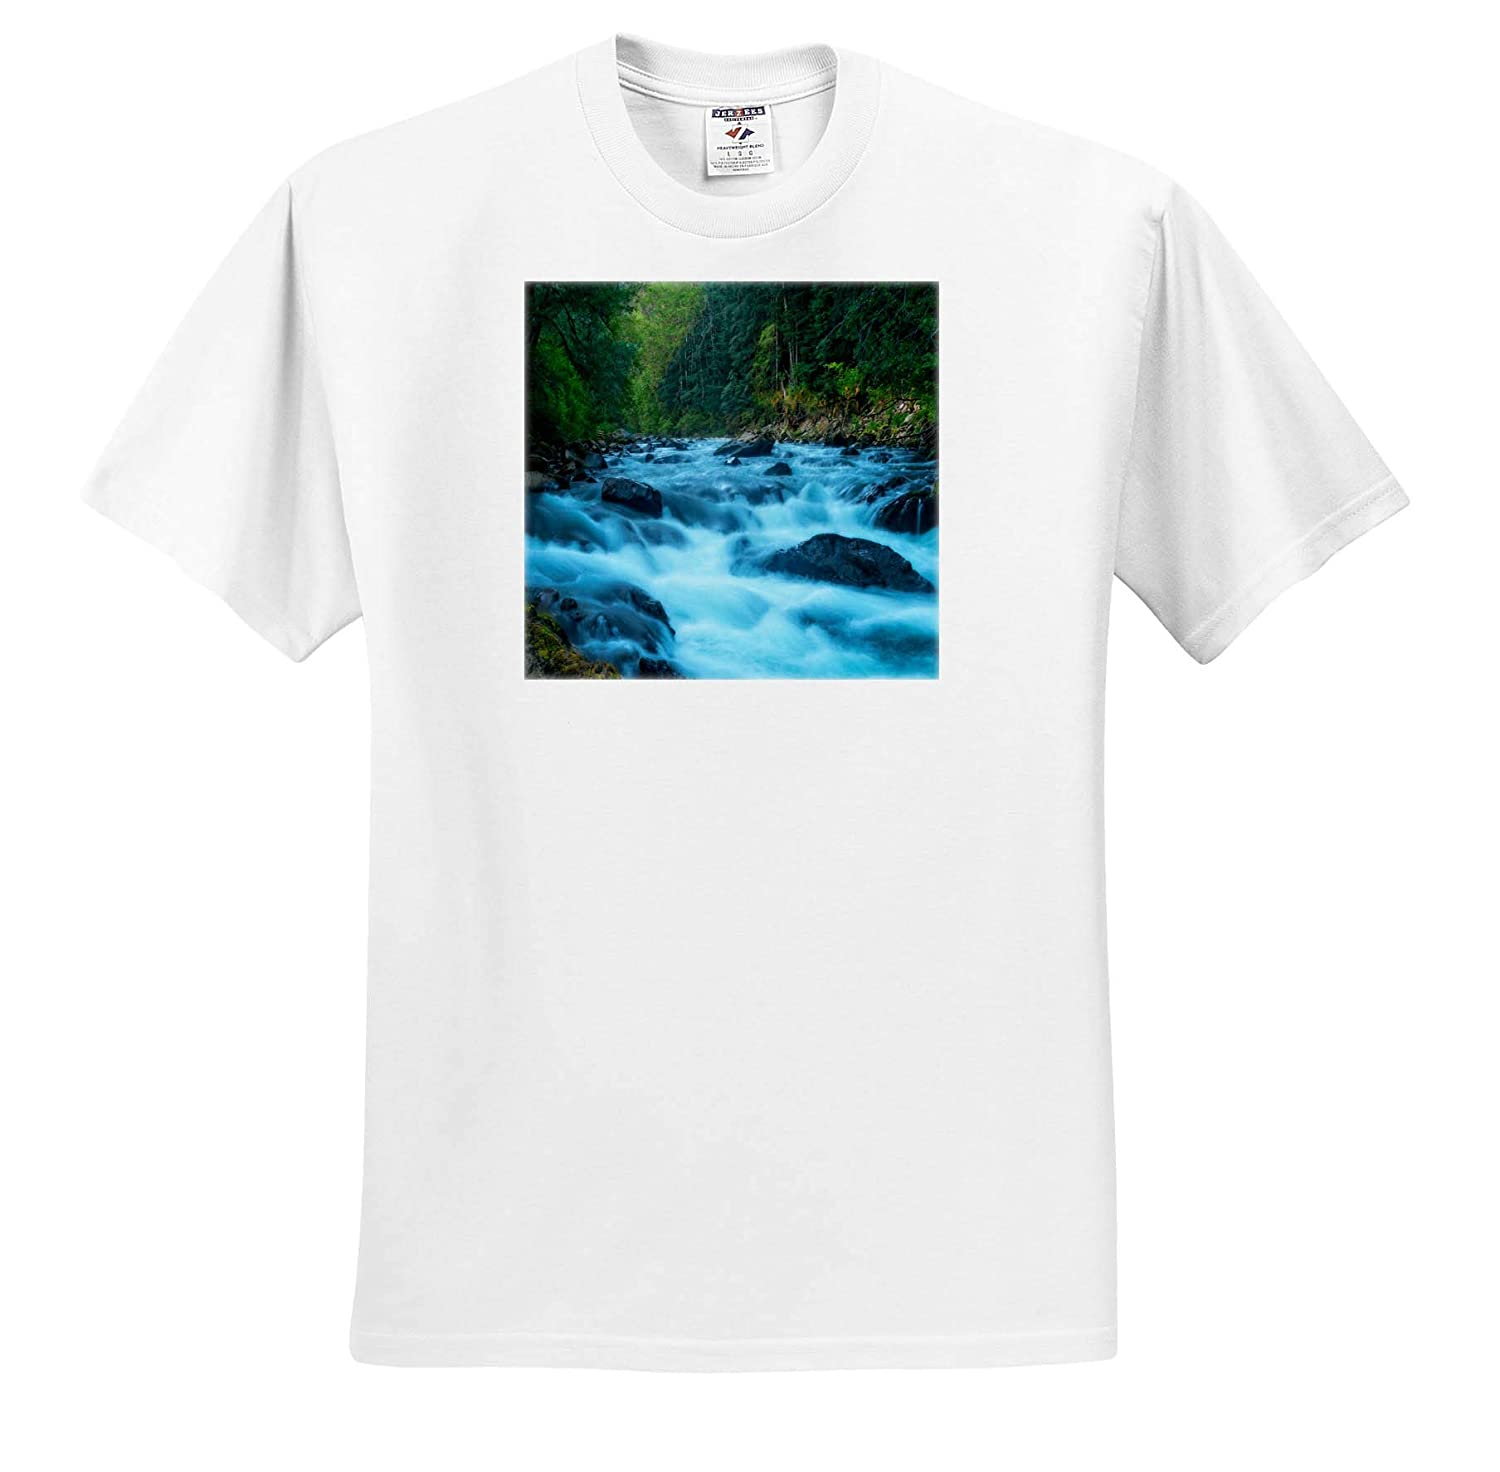 ts/_309071 Rushing Water Flowing Through Forest Landscapes 3dRose Mike Swindle Photography Adult T-Shirt XL